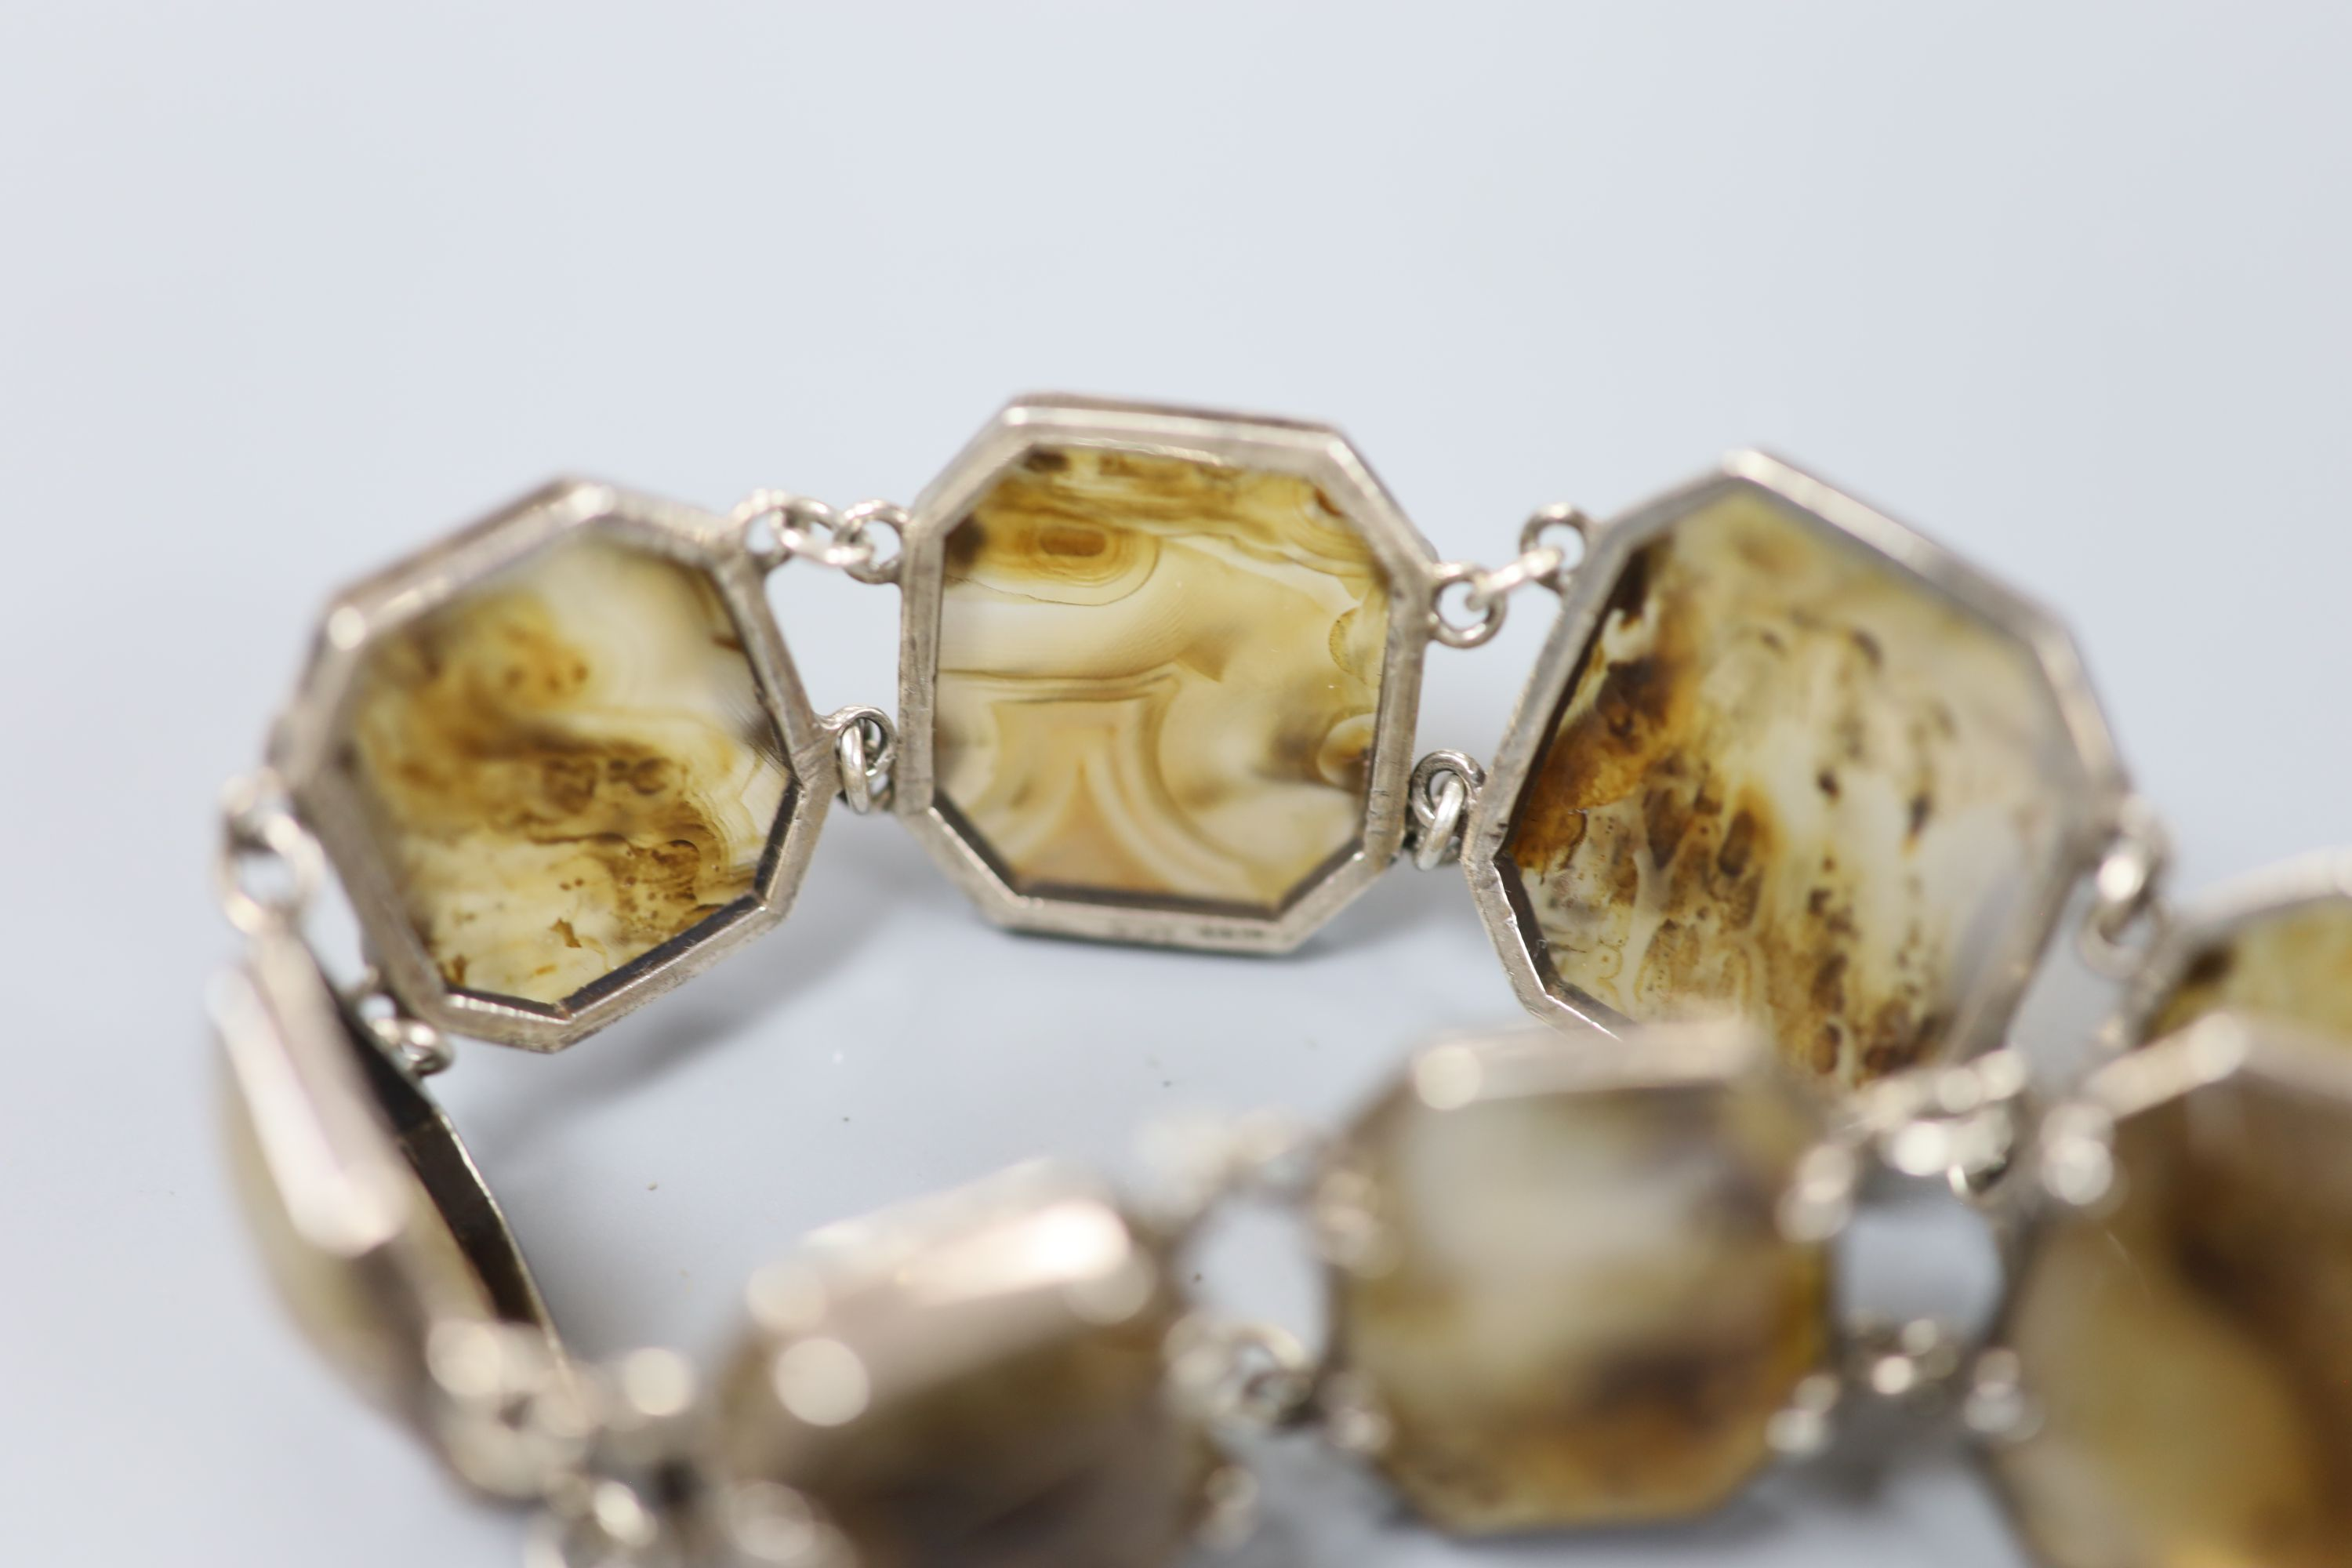 A 20th century white metal and facetted agate set bracelet, approx. 18cm, gross 37.2 grams. - Image 4 of 4